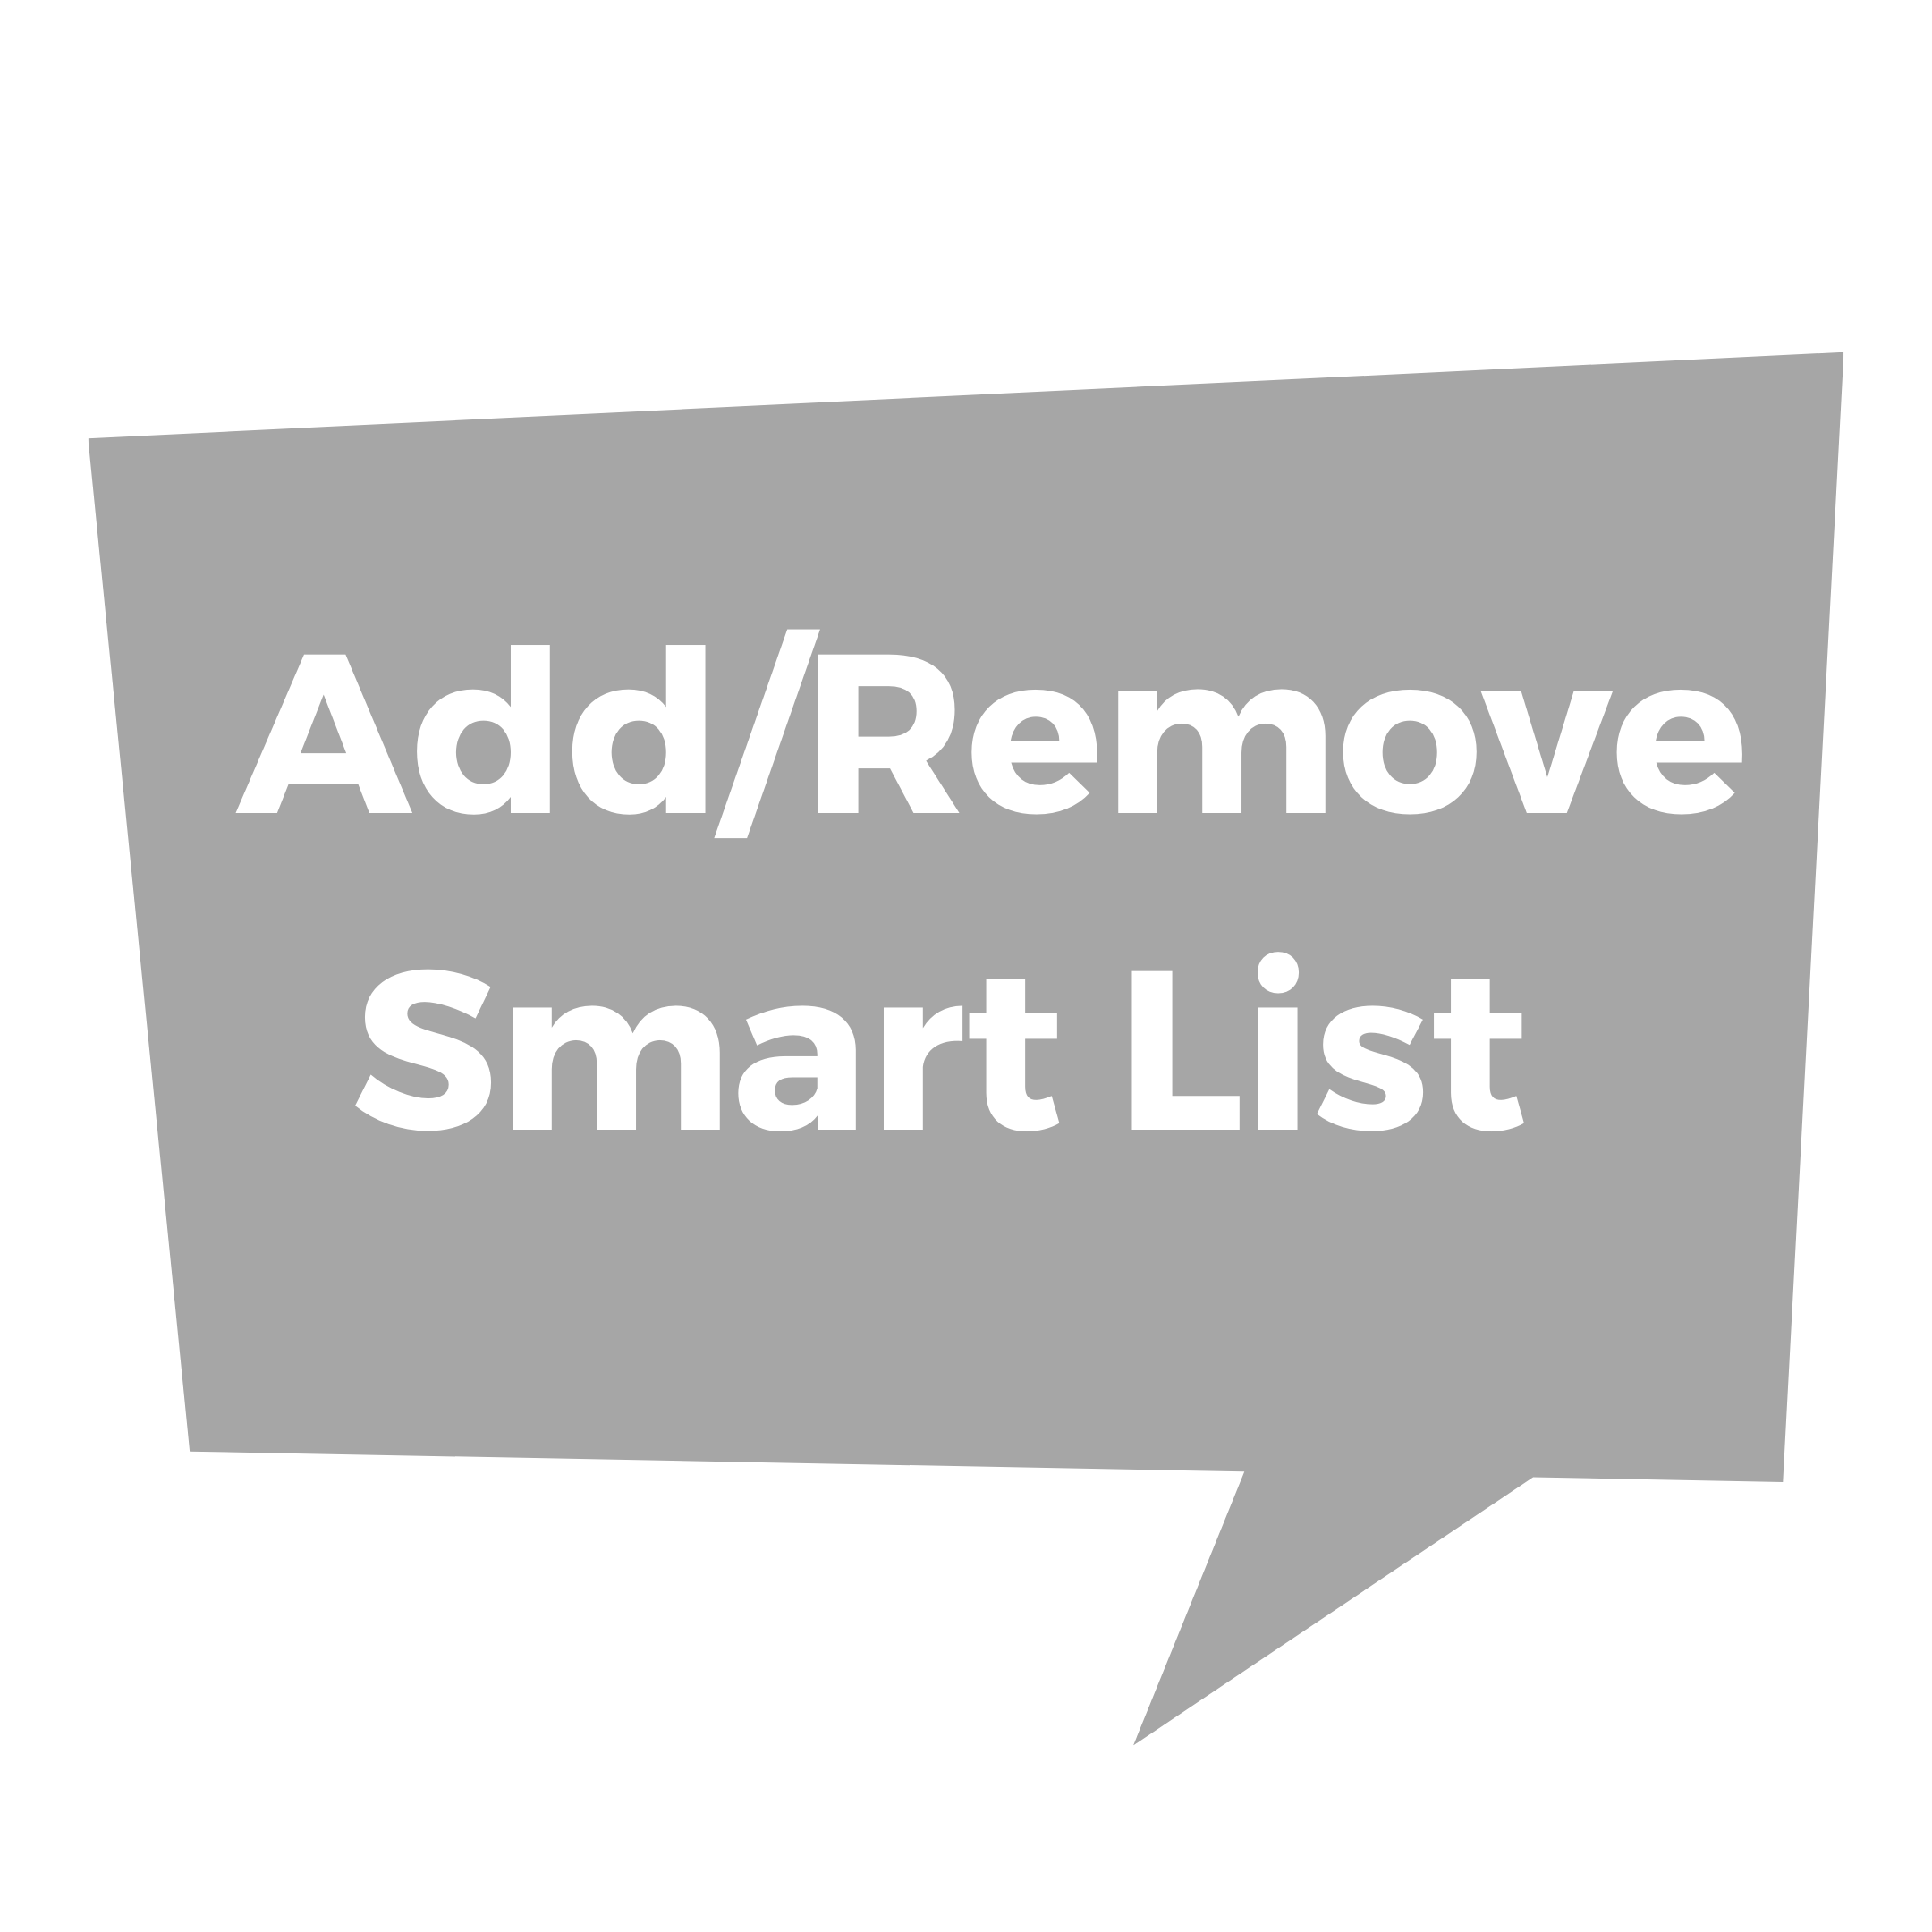 Add/Remove Smart List